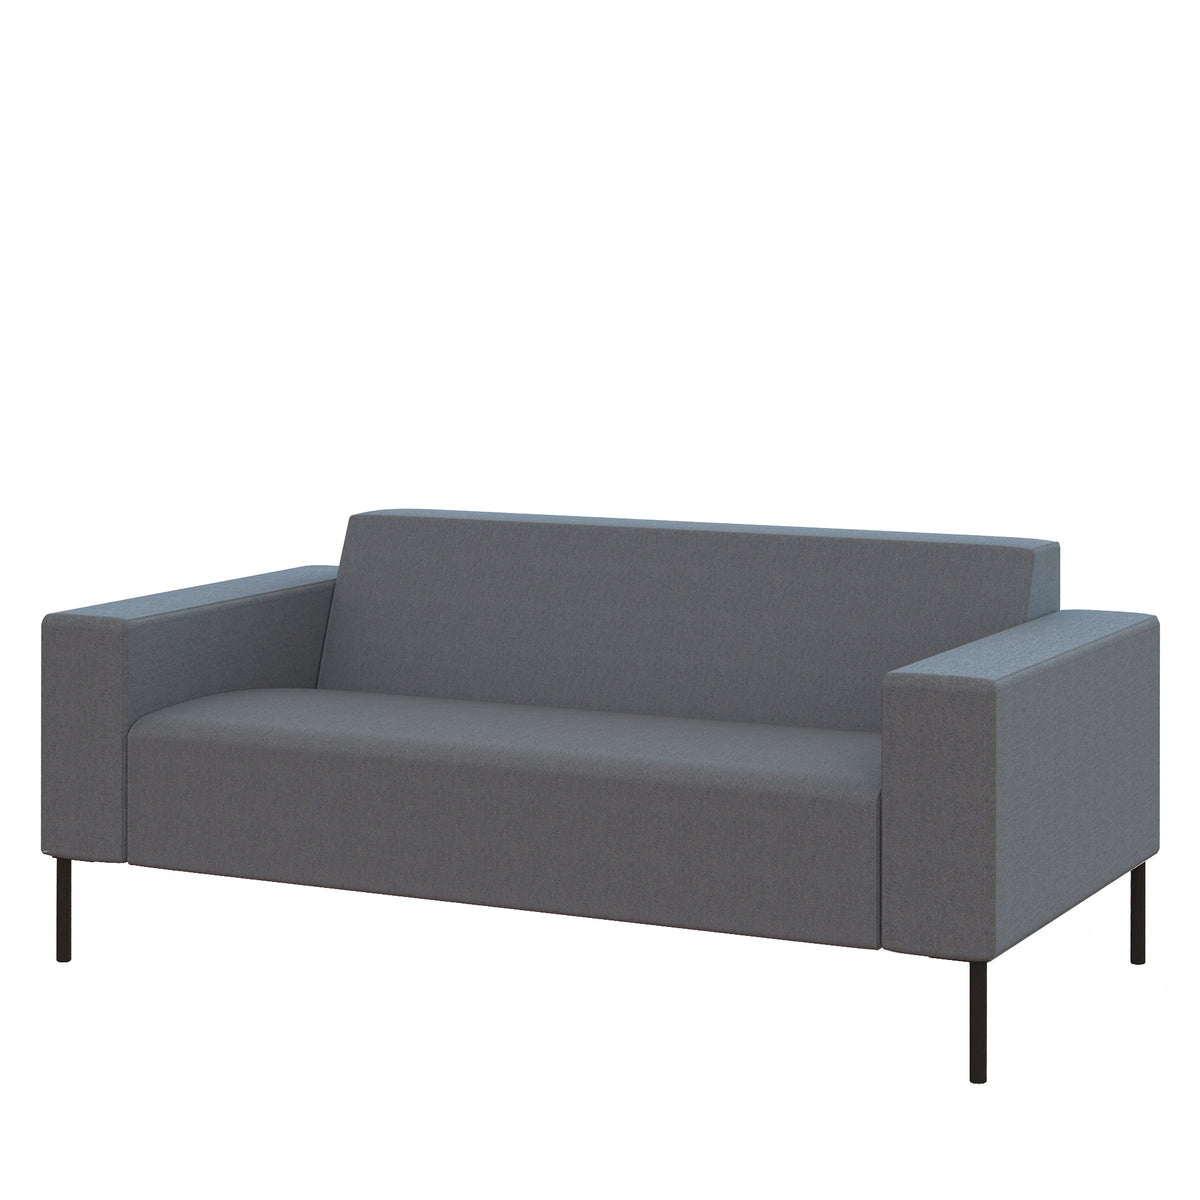 Hitch Mylius HM18 Origin Two Seat Sofa Black Legs Westminster